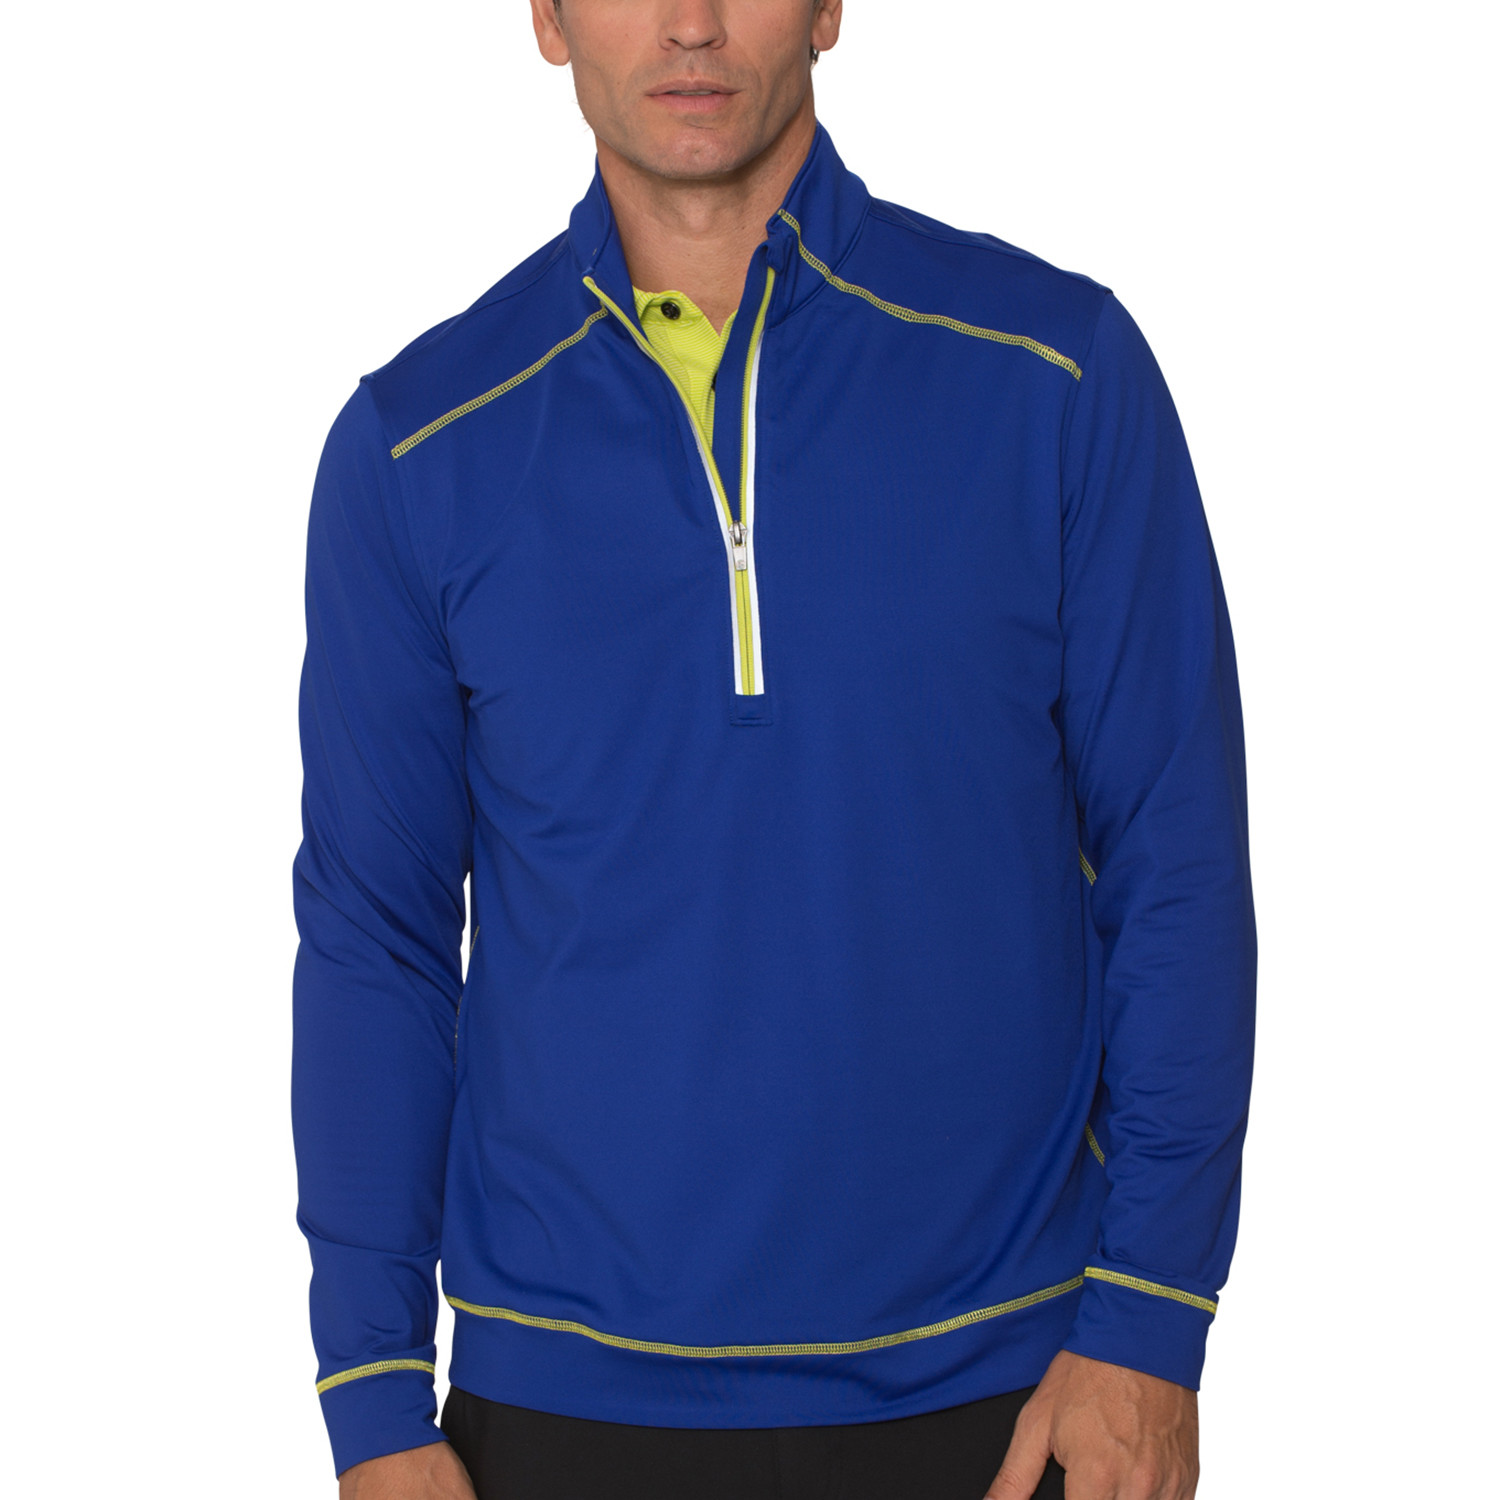 6759acceb Authority Half-Zip Jacket // Ultramarine (M) - Chase54 - Touch of Modern